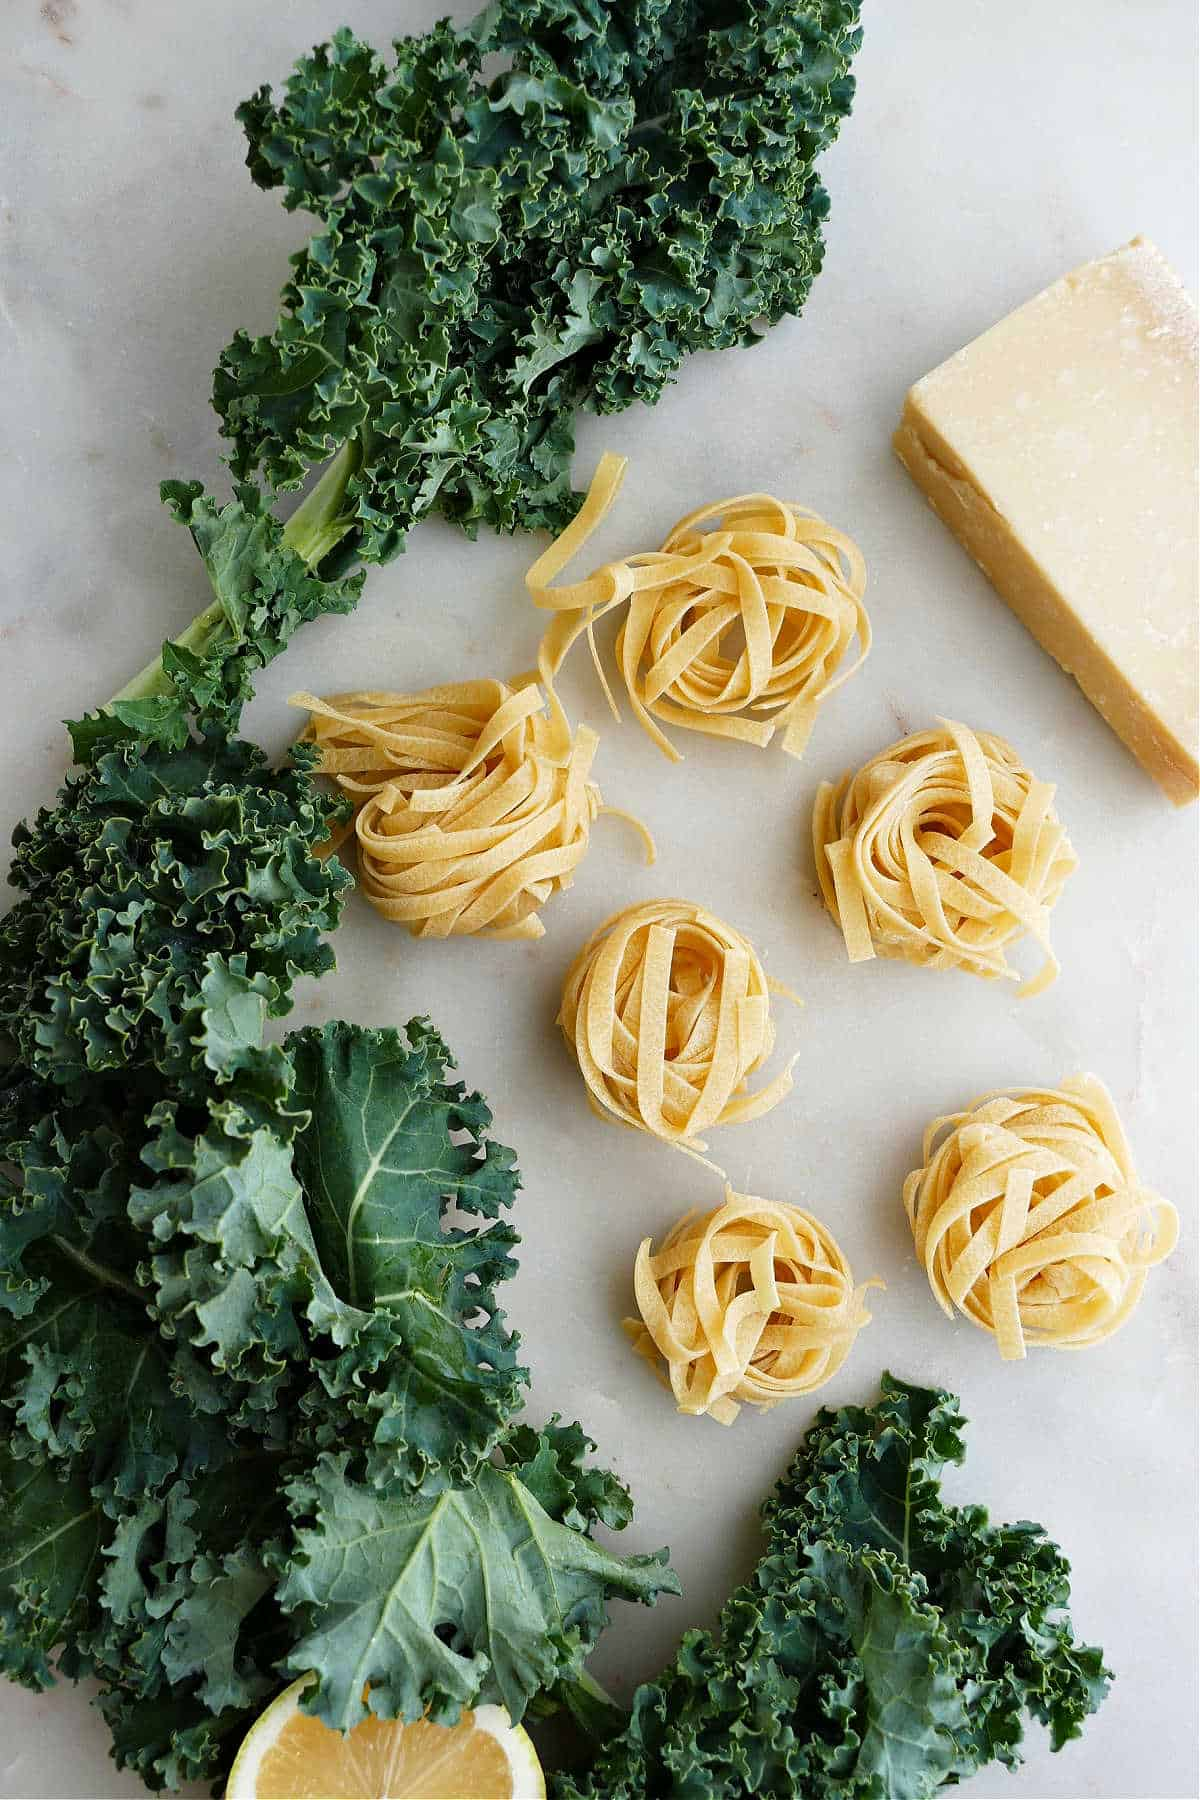 kale leaves, nests of tagliatelle, parmesan, and lemon spread out on a counter